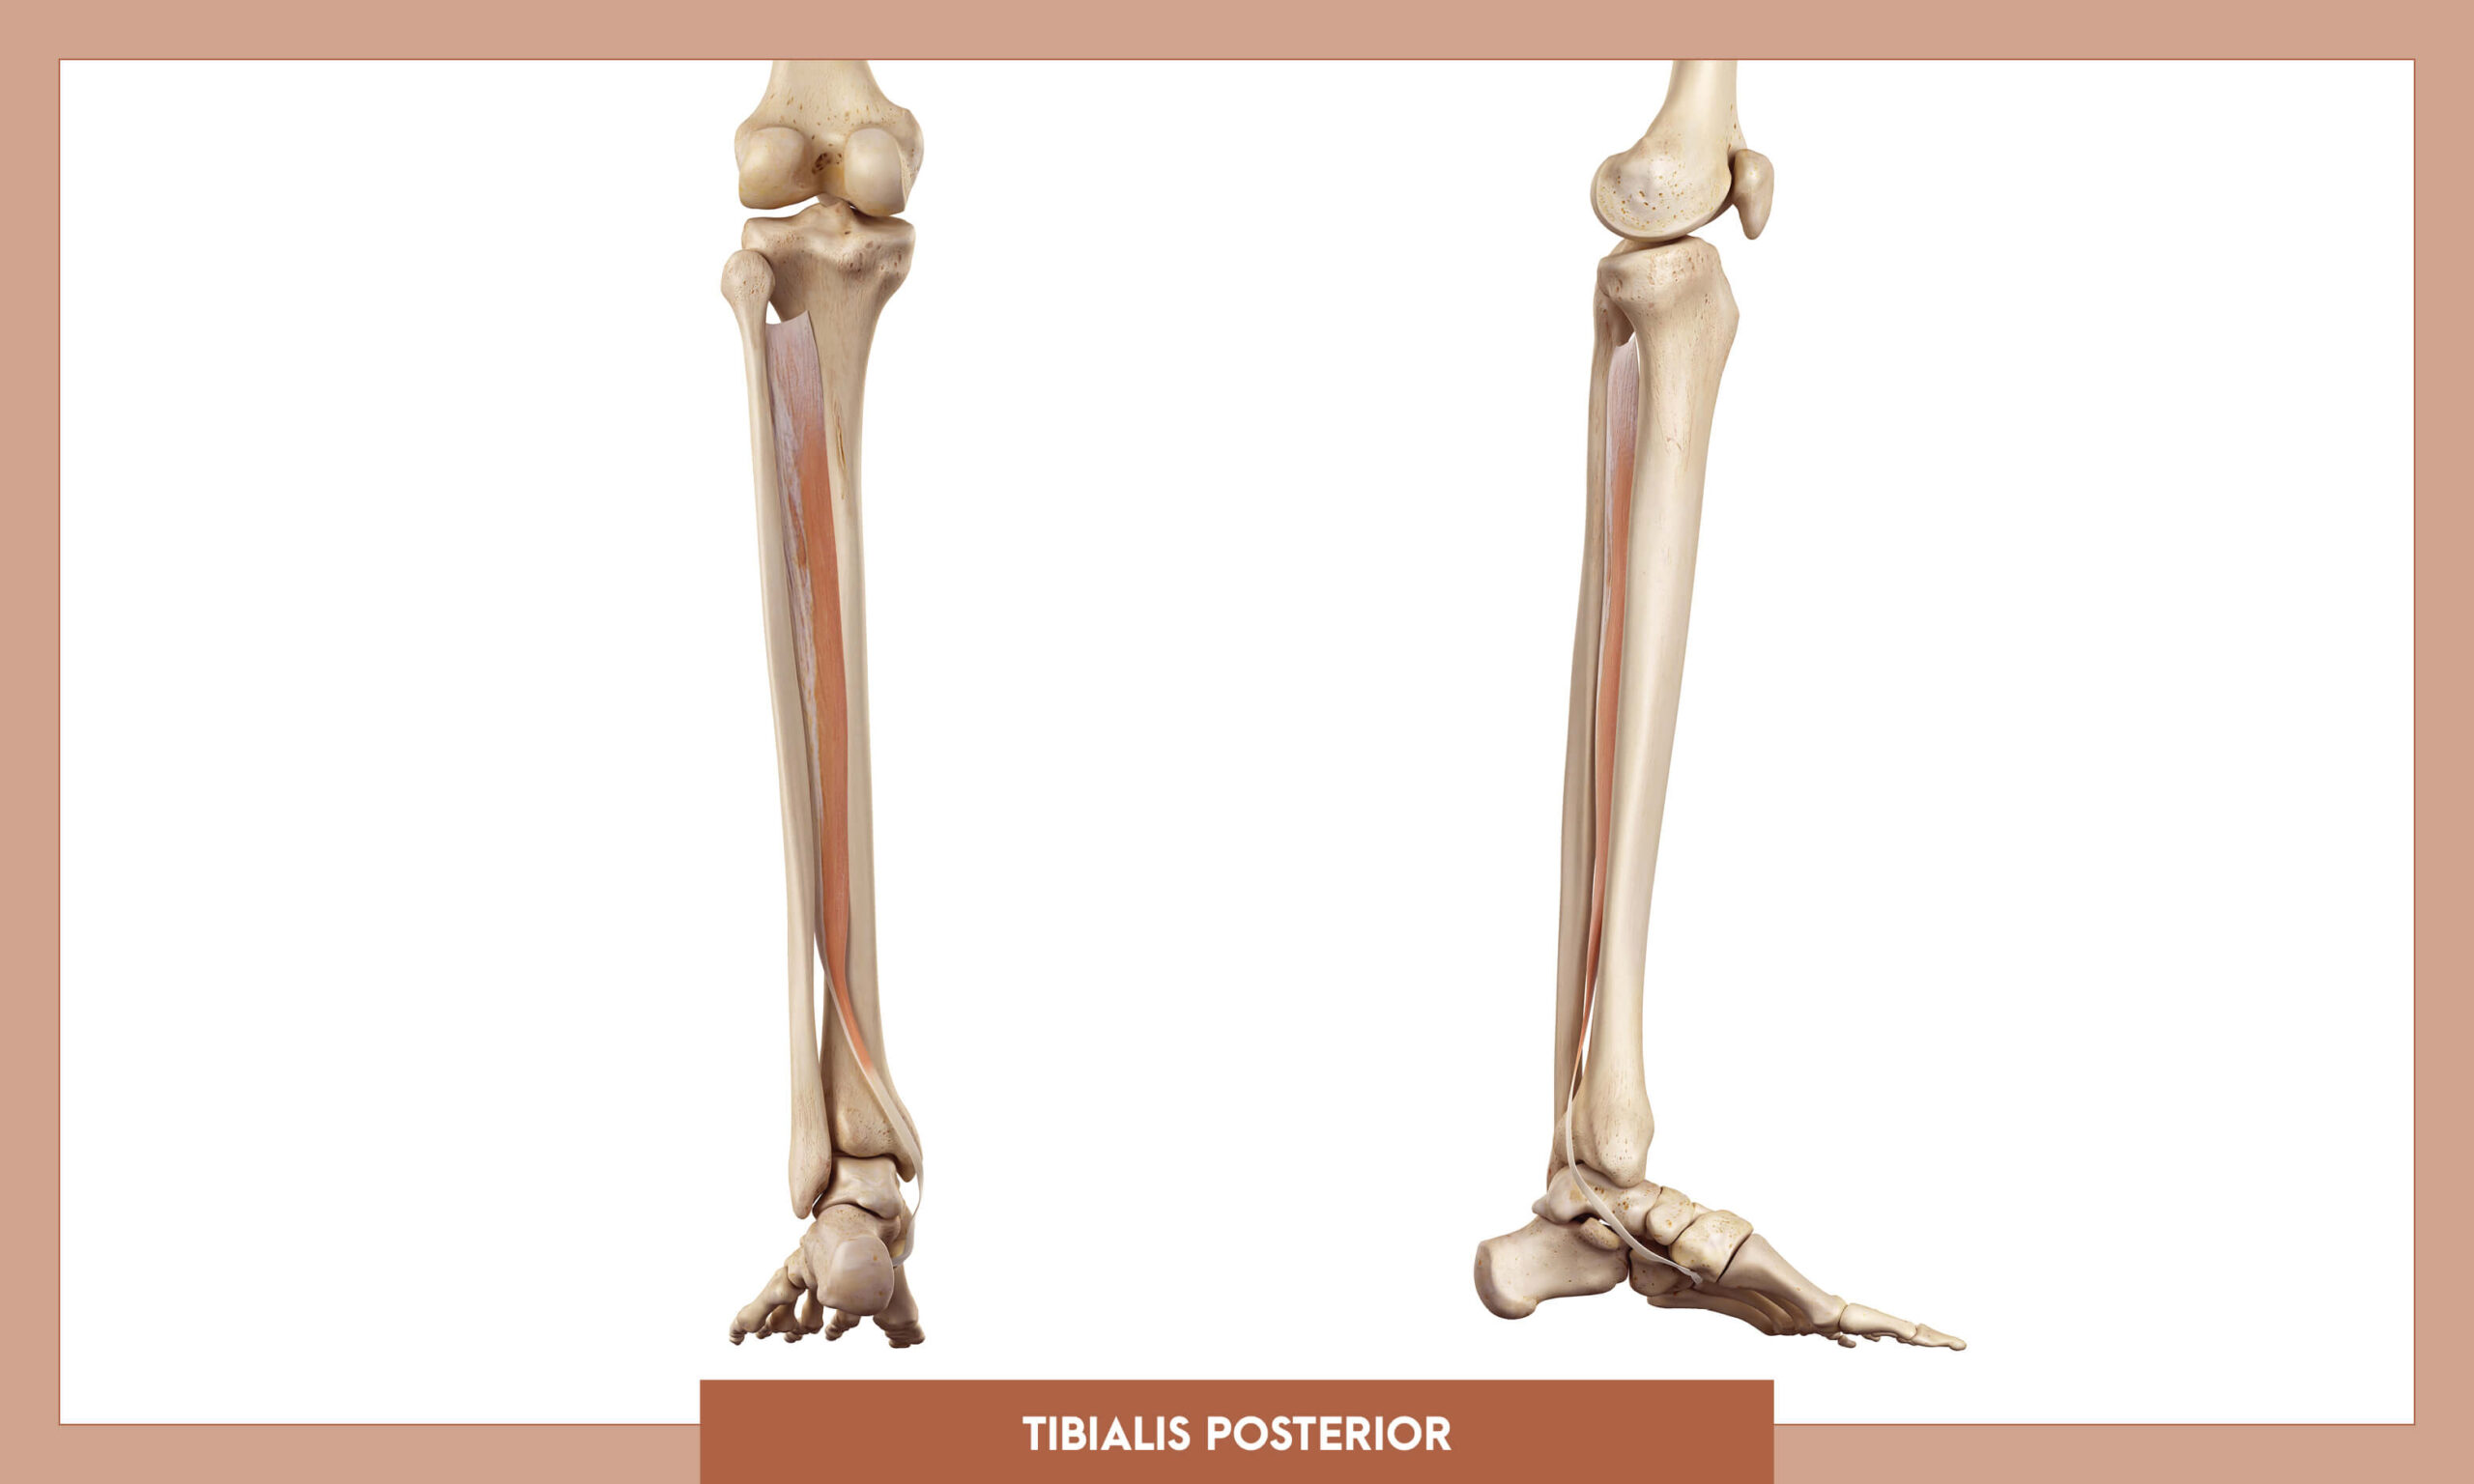 Muscles of thee Lower Limb - Tibialis posterior